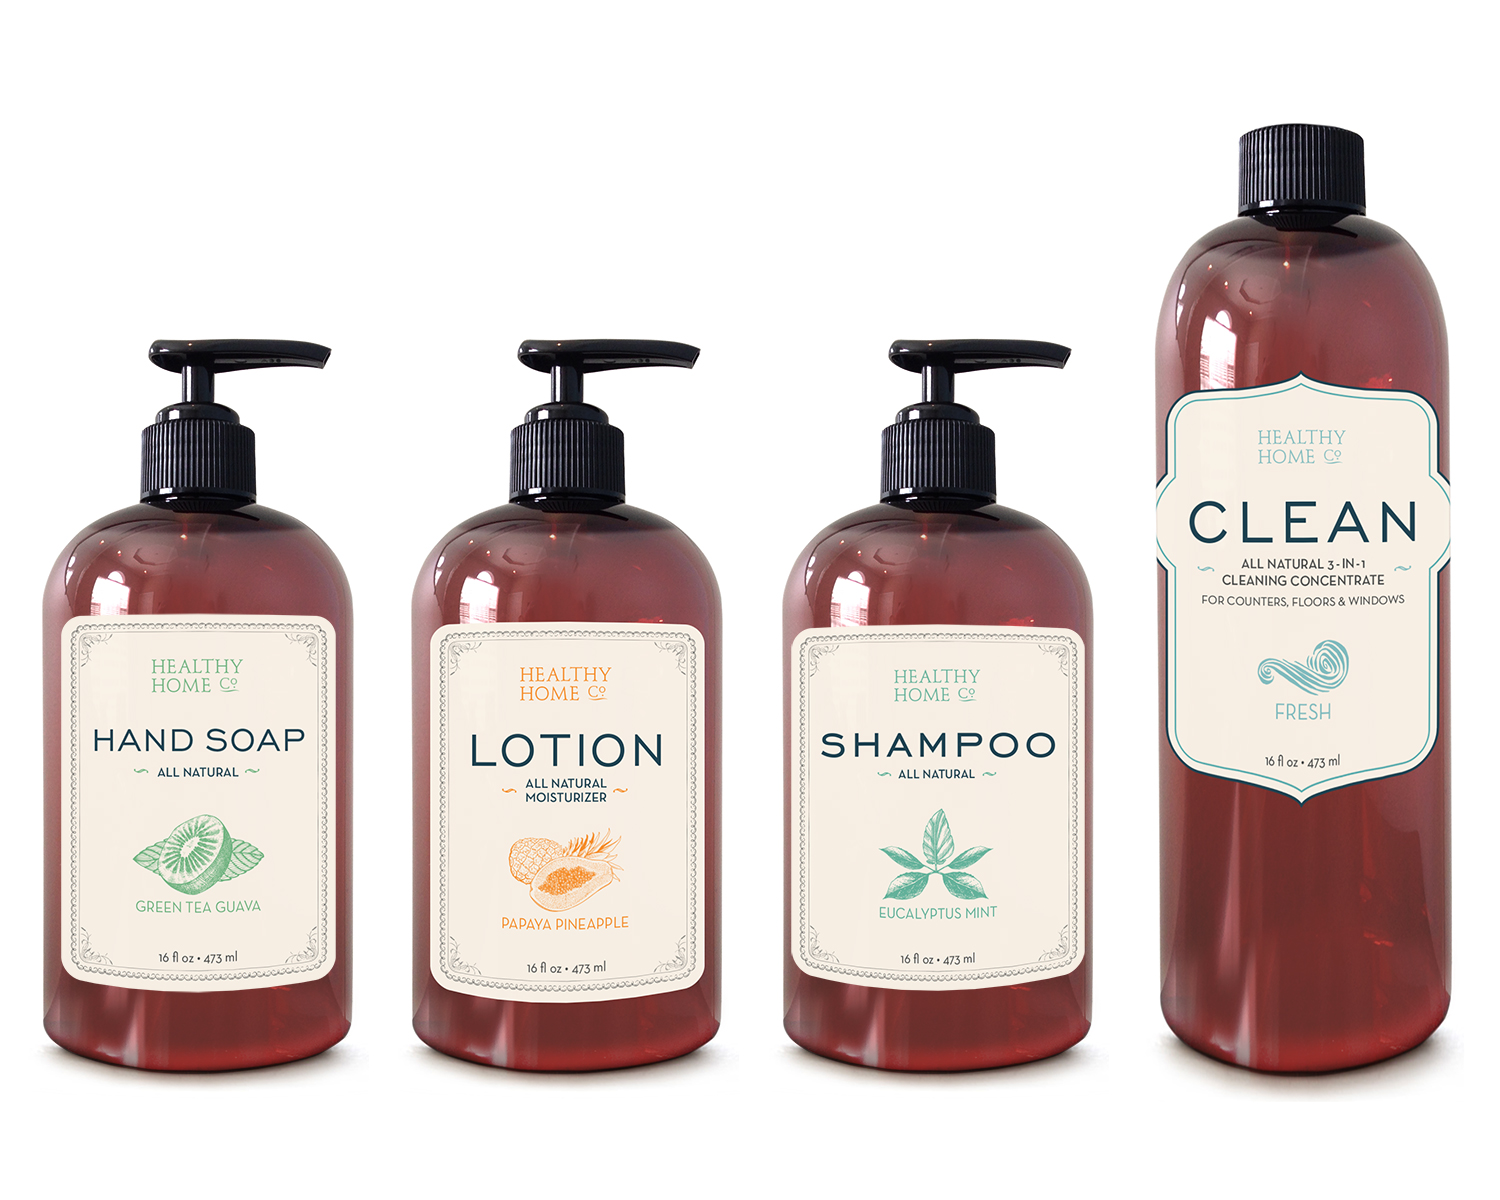 Complete Rebrand and Package Redesign for Natural Products Line